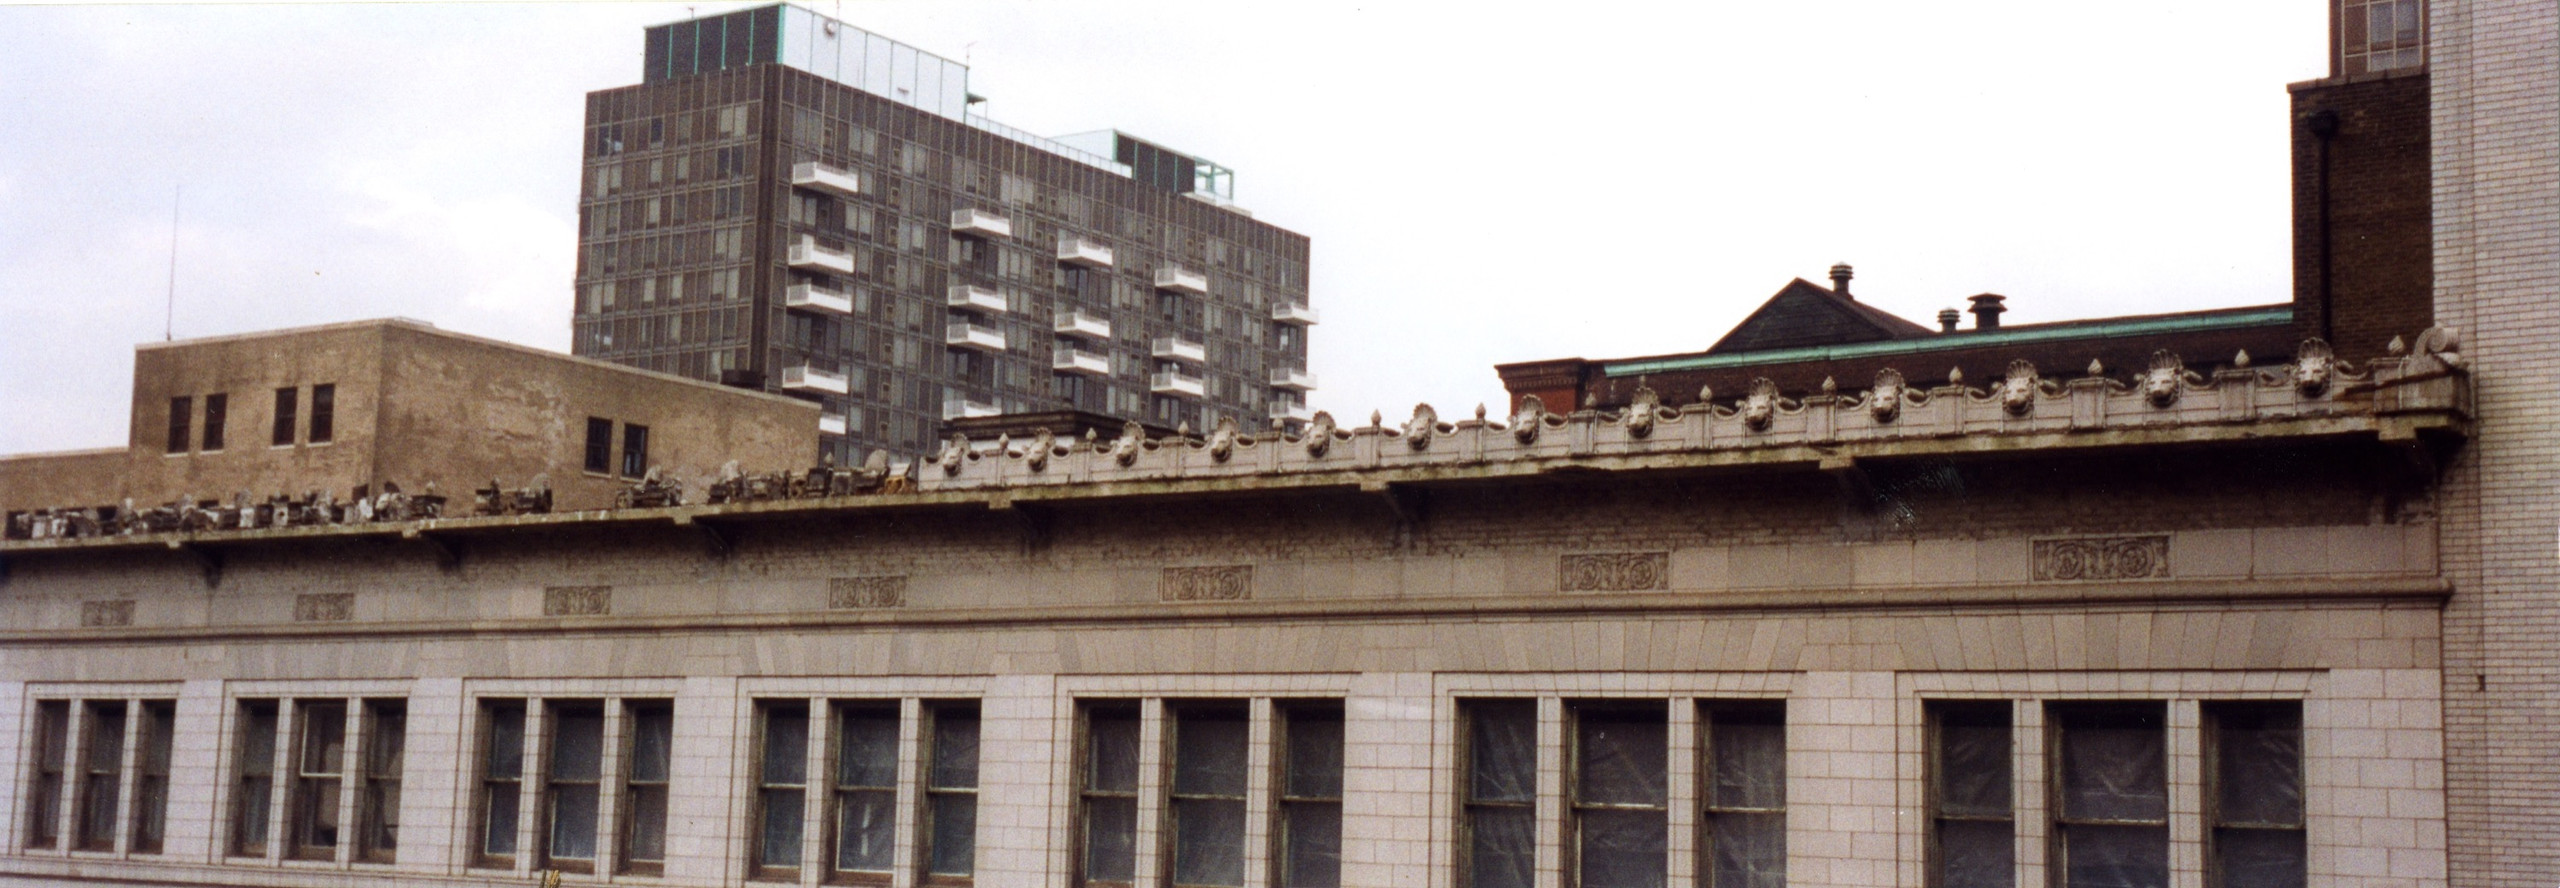 Photograph of the Marquette Annex Building under deconstruction, showing the lion heads that once rimmed the cornice.